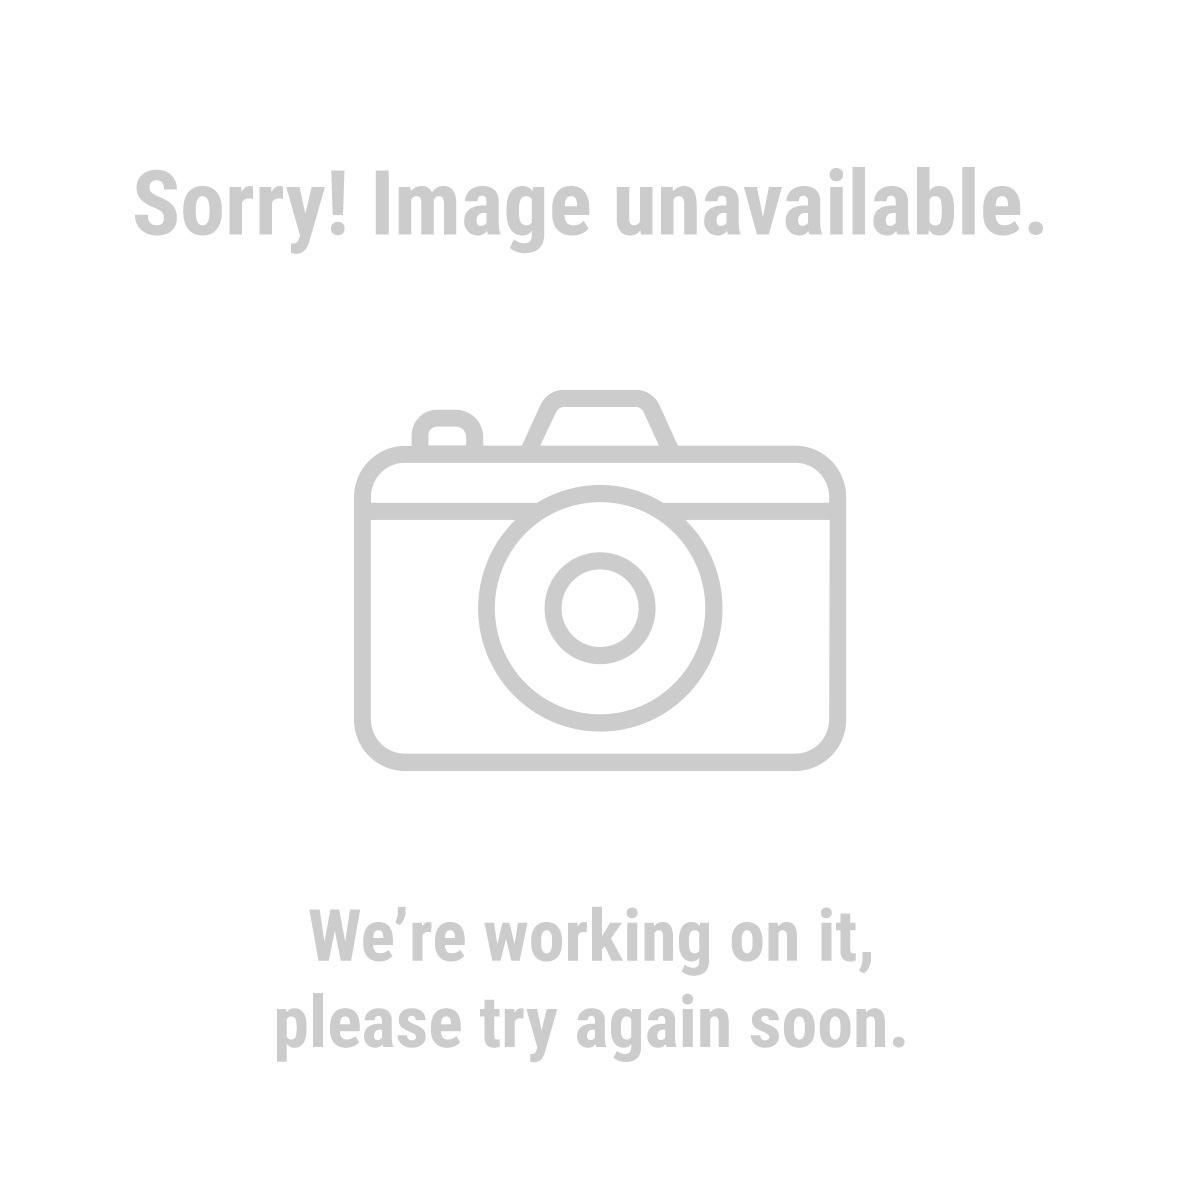 Thunderbolt Magnum Solar Battery Charger Wiring Diagram Inverter Rv 100 Watt Panel Kitthunderbolt 15